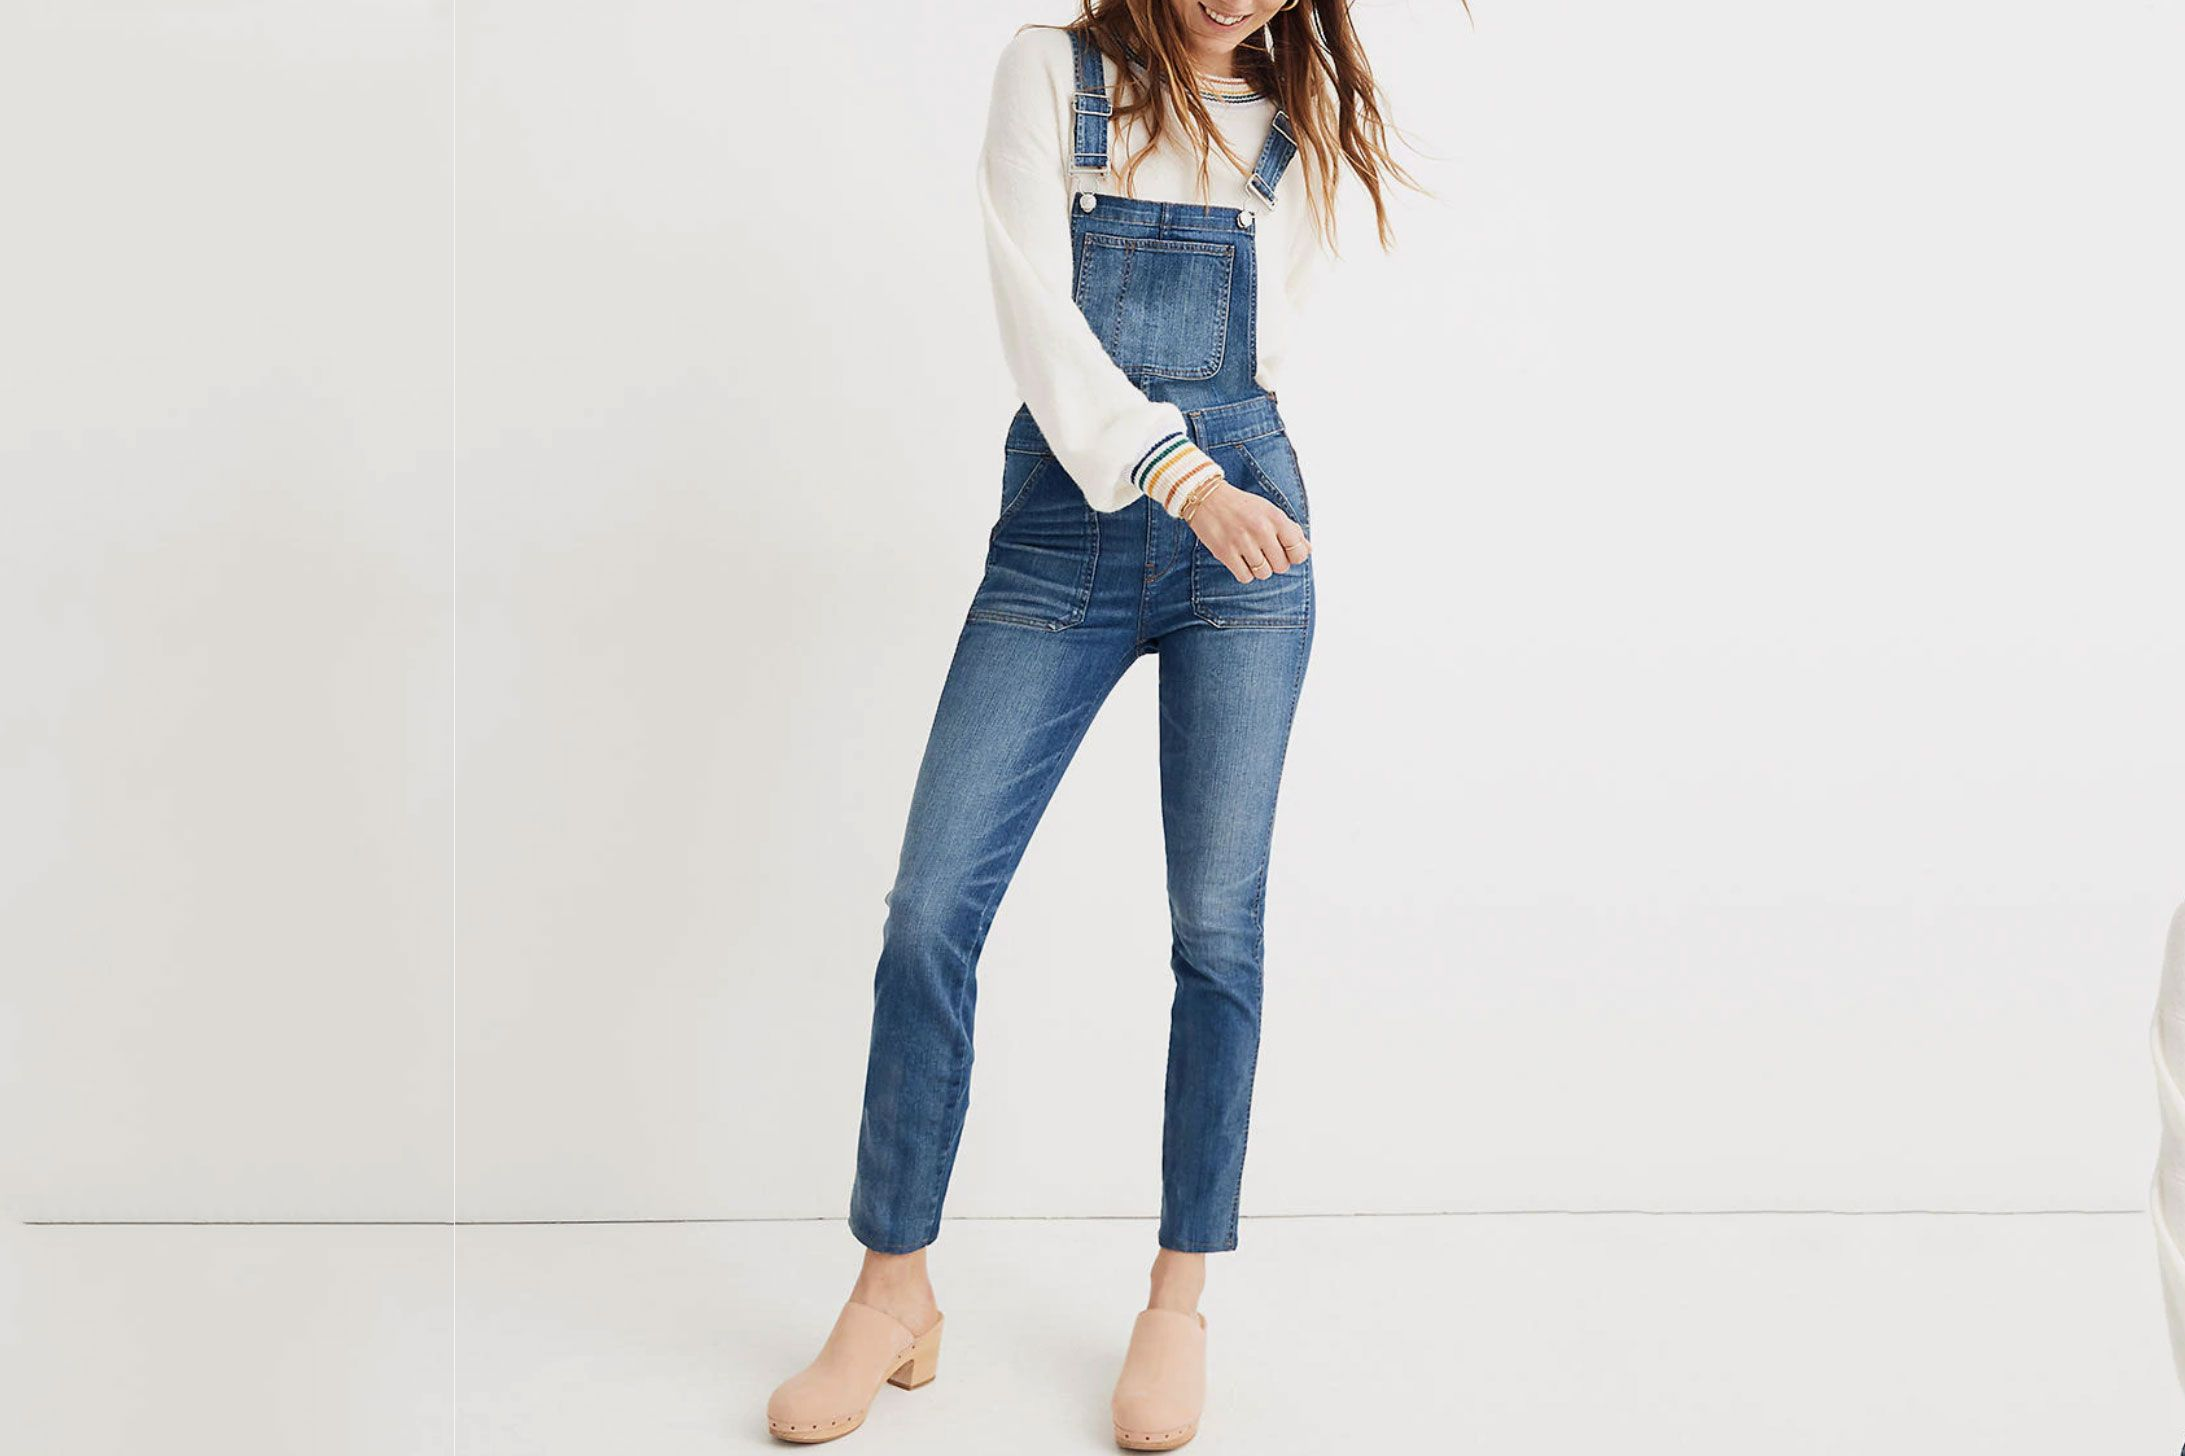 Madewell Skinny Overalls in Jansing Wash